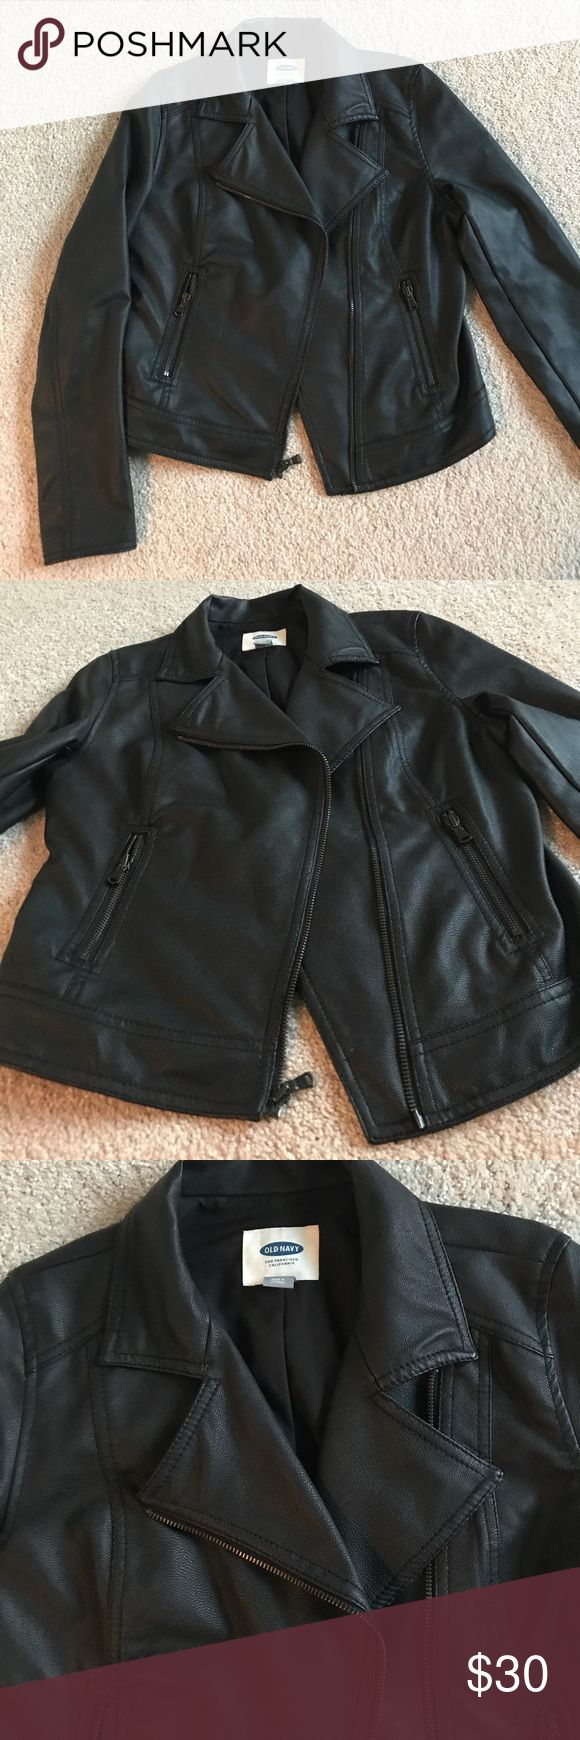 Black Faux Leather Moto Jacket This is a GREAT faux leather jacket. If it still fit me I would be wearing it all the time!! Love the moto look and it doesn't look cheap. No signs of wear, excellent used condition. Make me an offer if you're interested! Old Navy Jackets & Coats